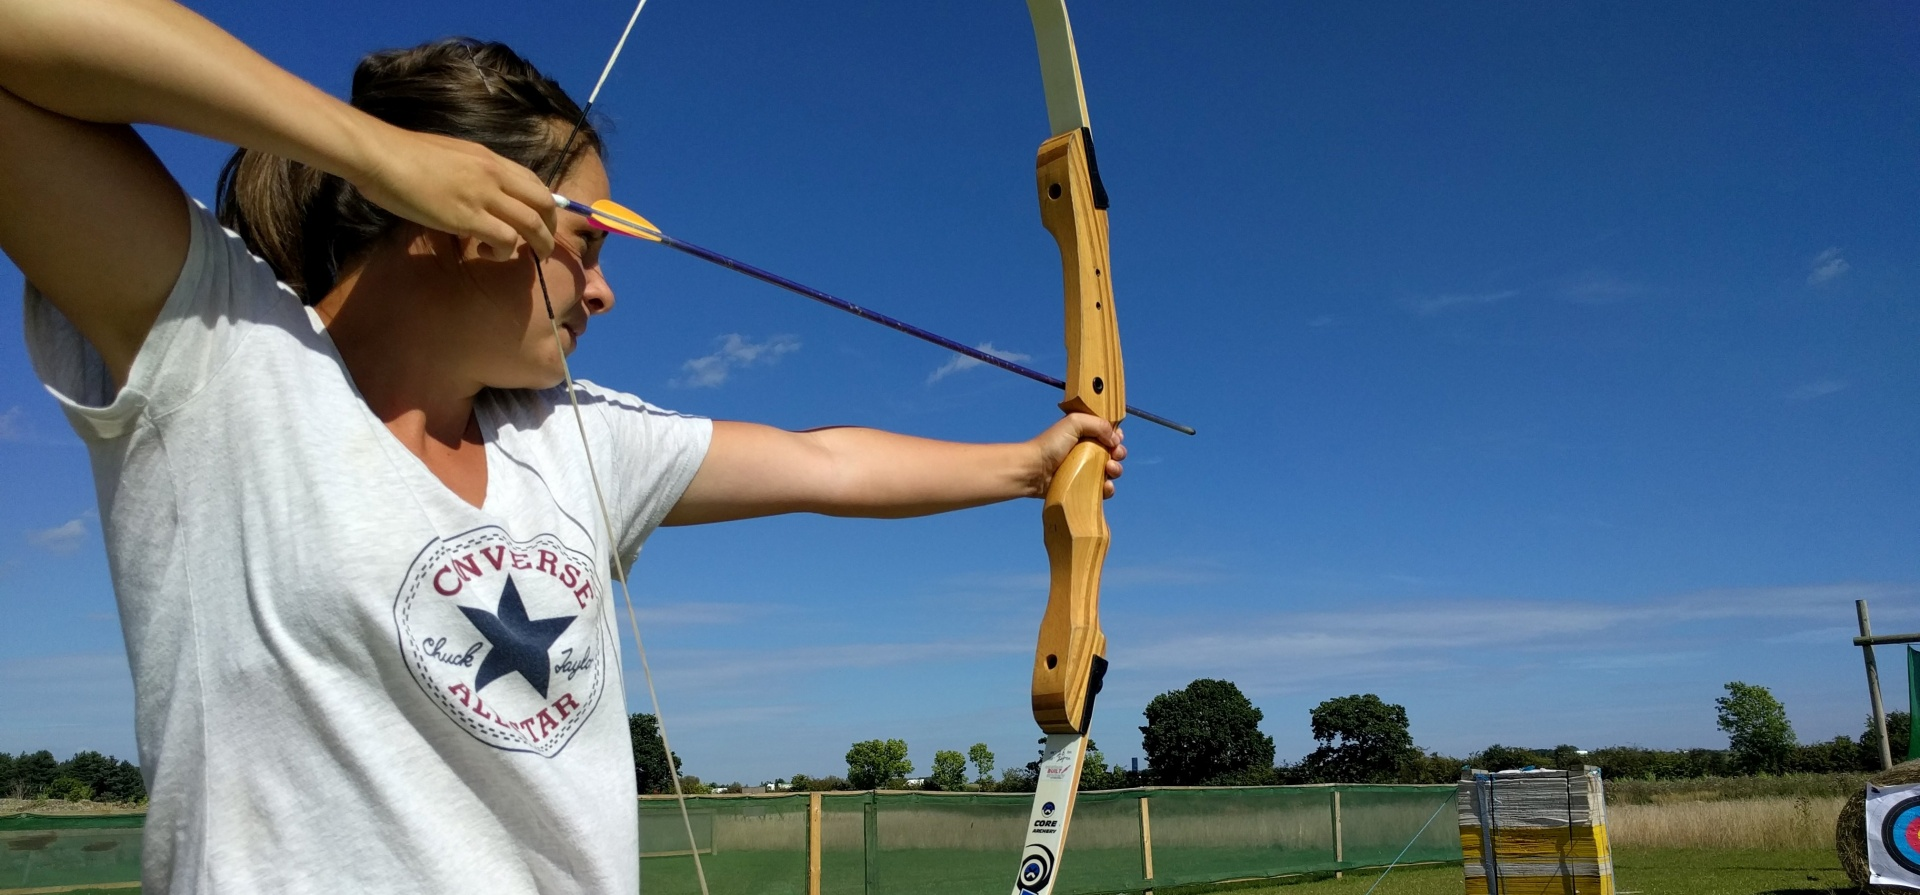 Nottingham Archery Lessons For Two-1